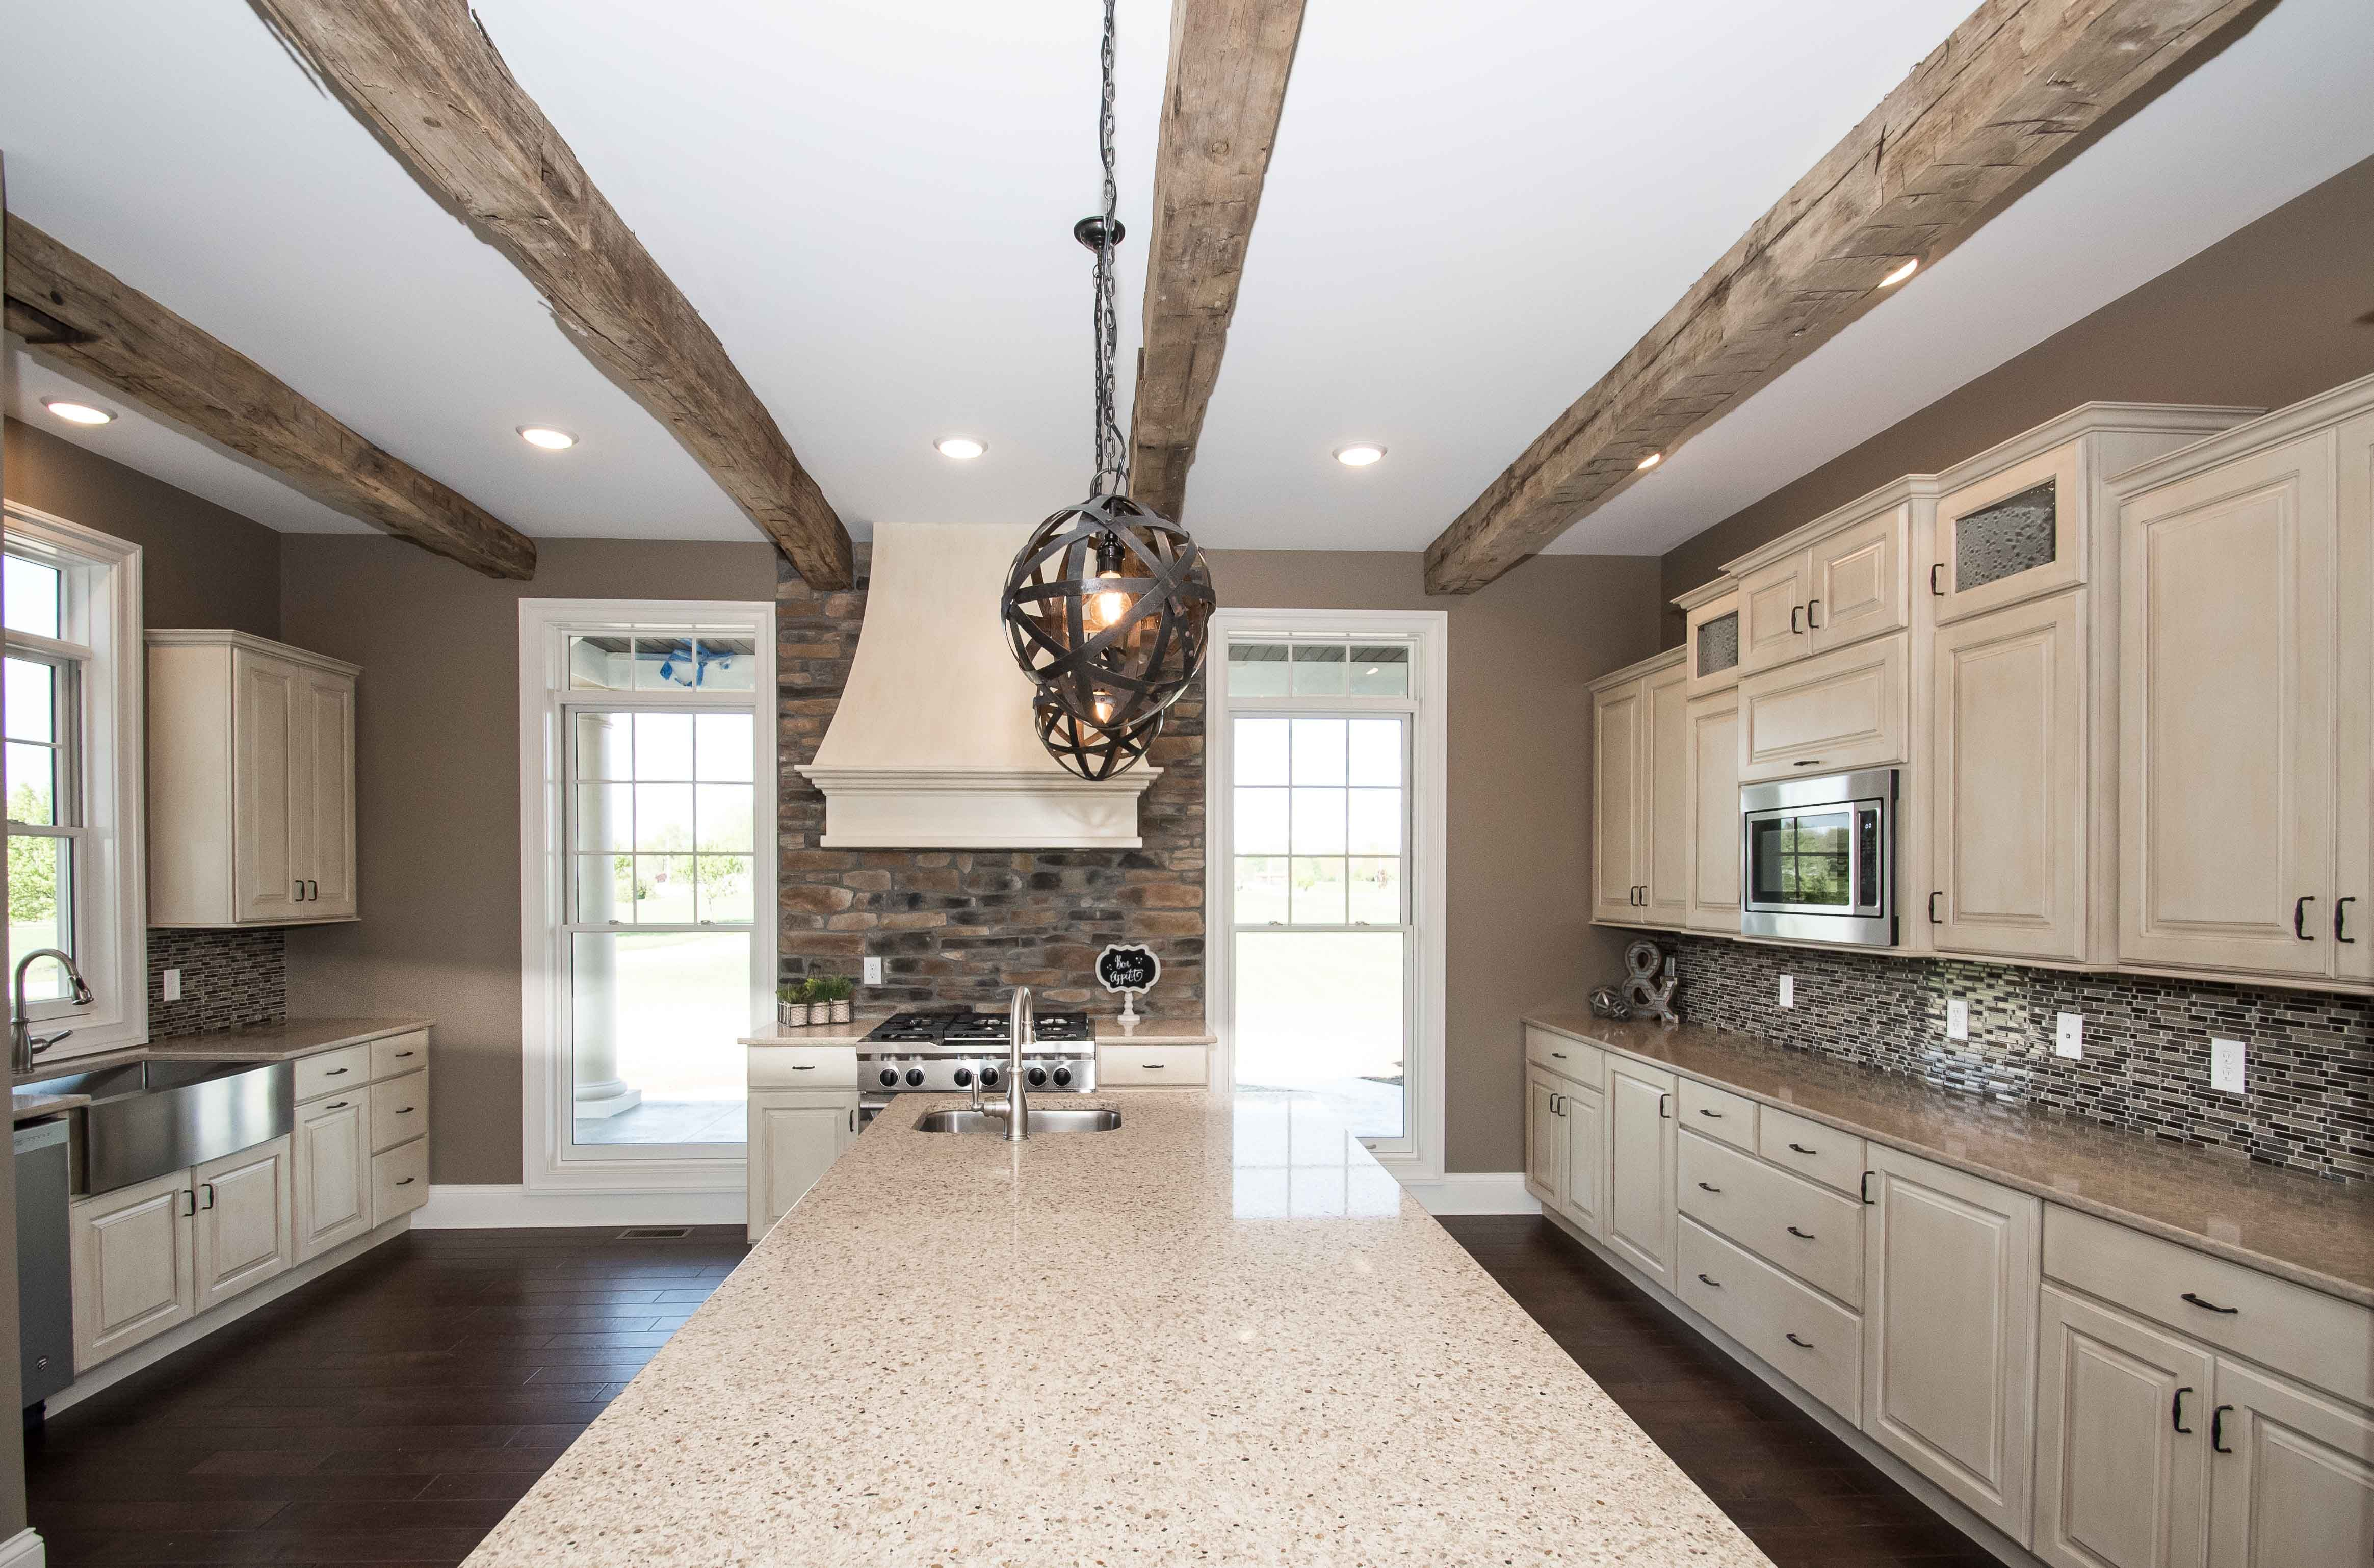 Custom Kitchen   Custom Painted Cabinets With Glaze For Perimeter, #76023  Baymont Maple For